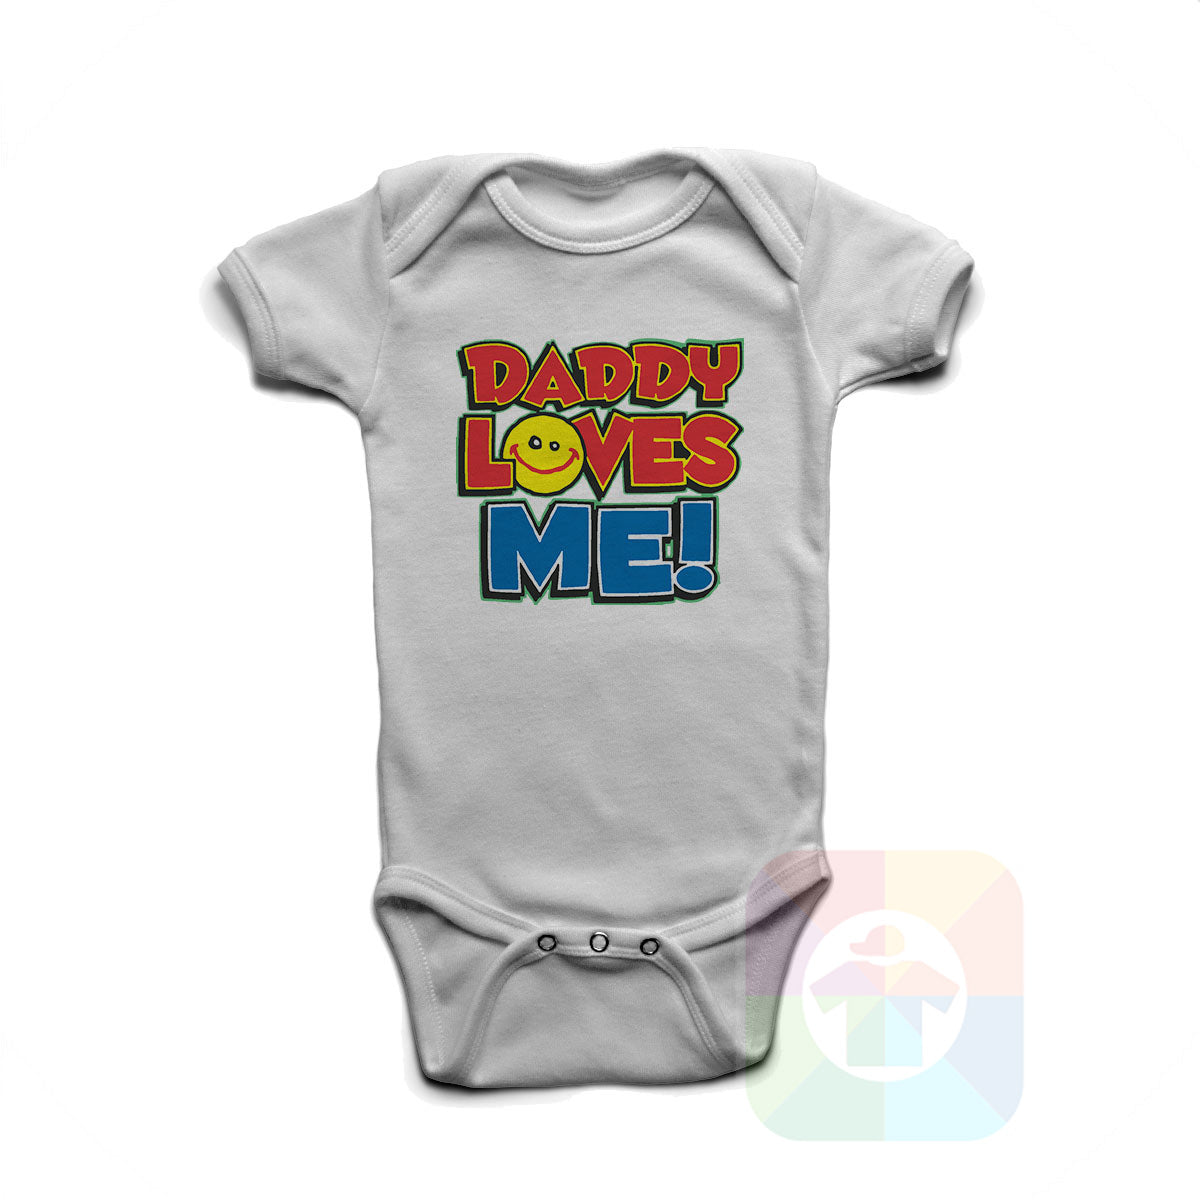 A WHITE Baby Onesie with the  ' Baby onesie 'DADDY LOVES ME' kids funny novelty design. #8061 / New Born, 6m, 12m, 24m Sizes ' design.